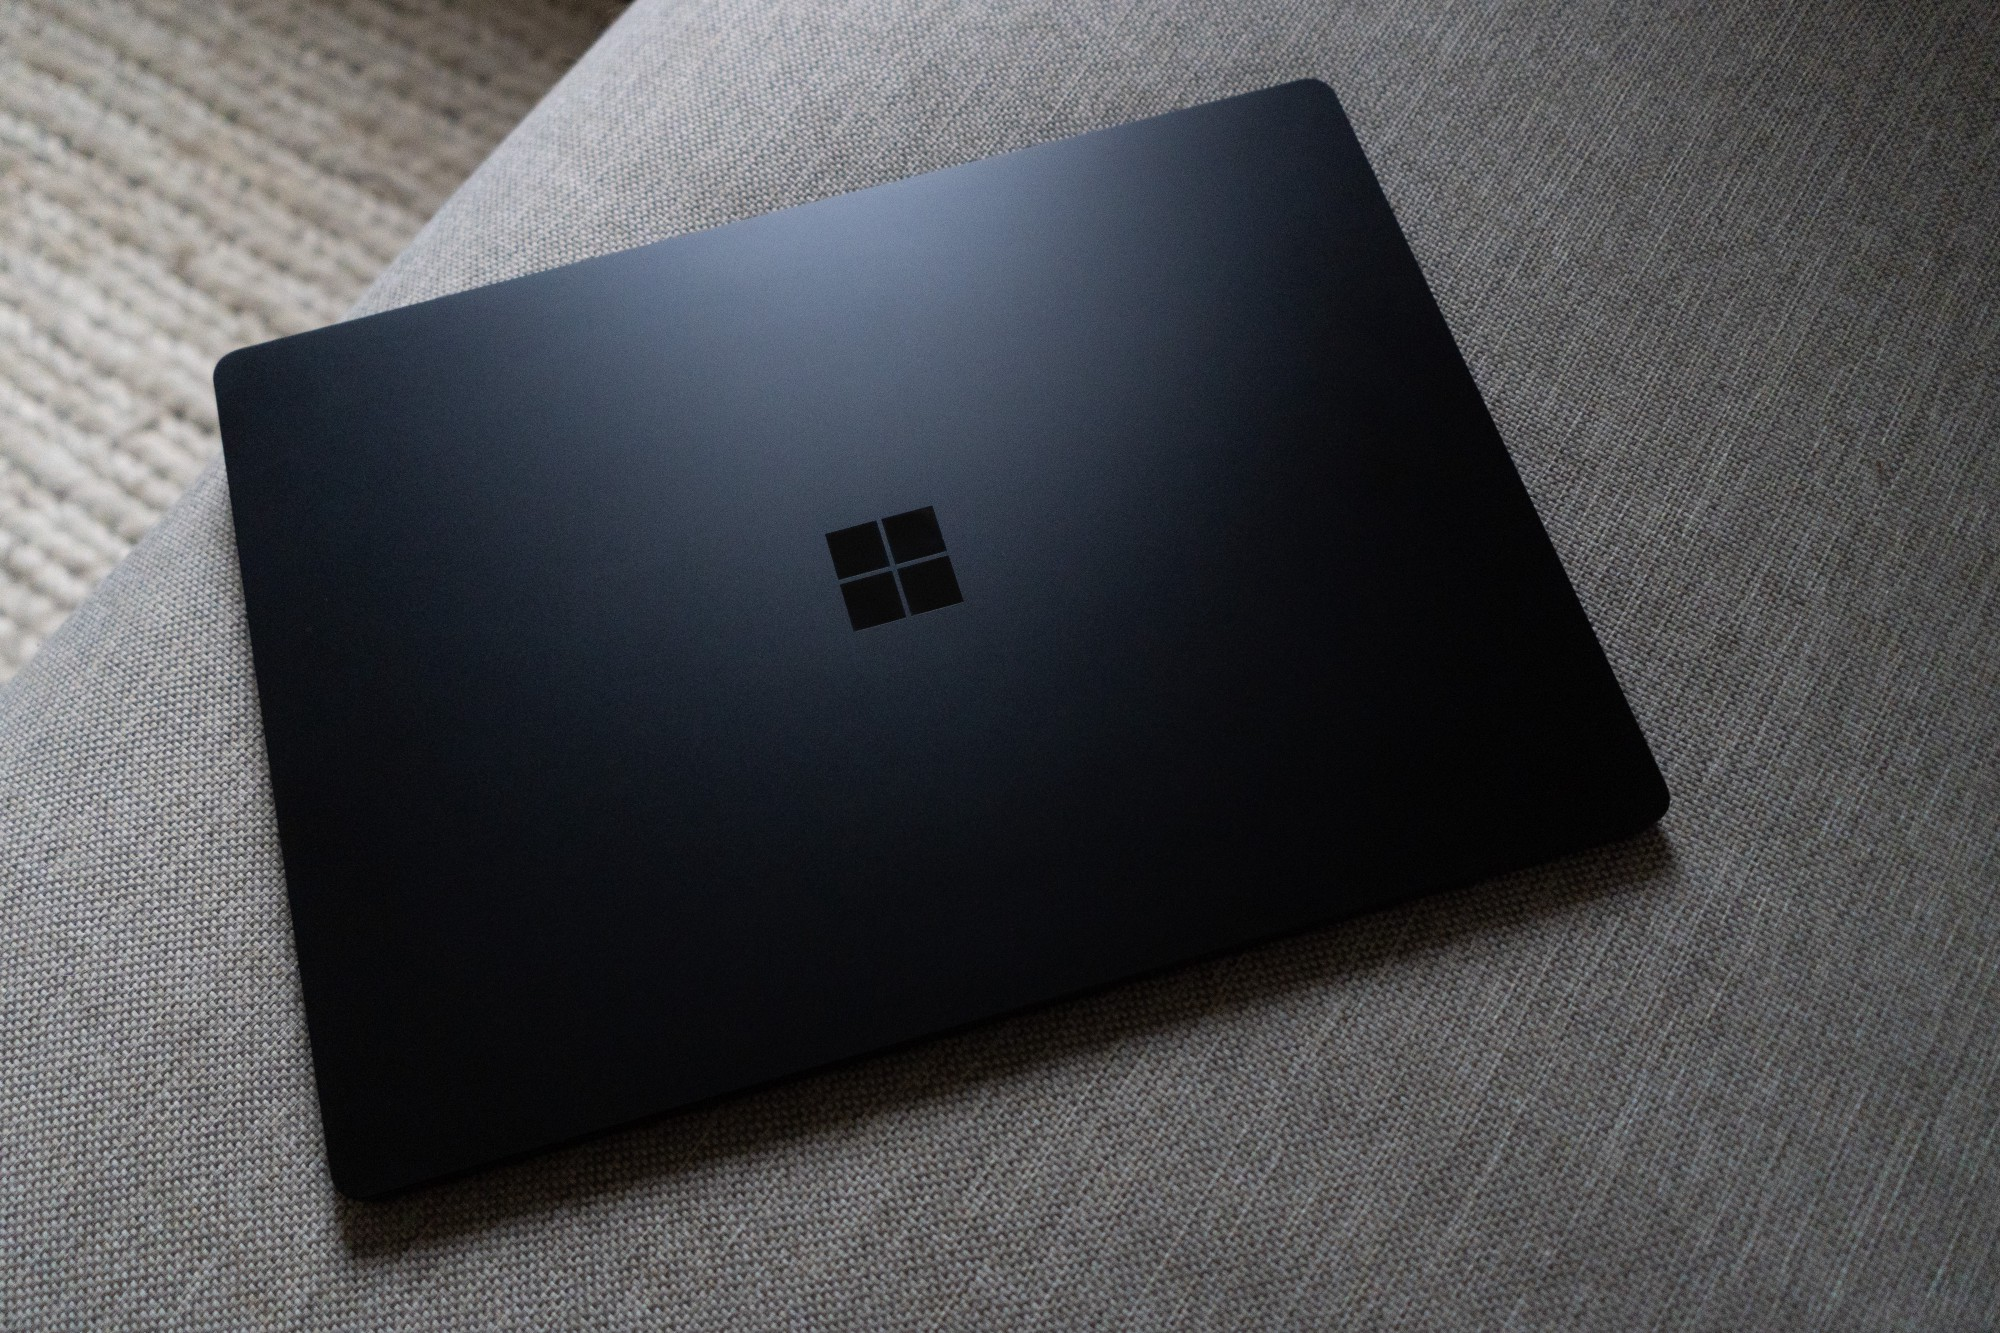 The Surface Laptop 4